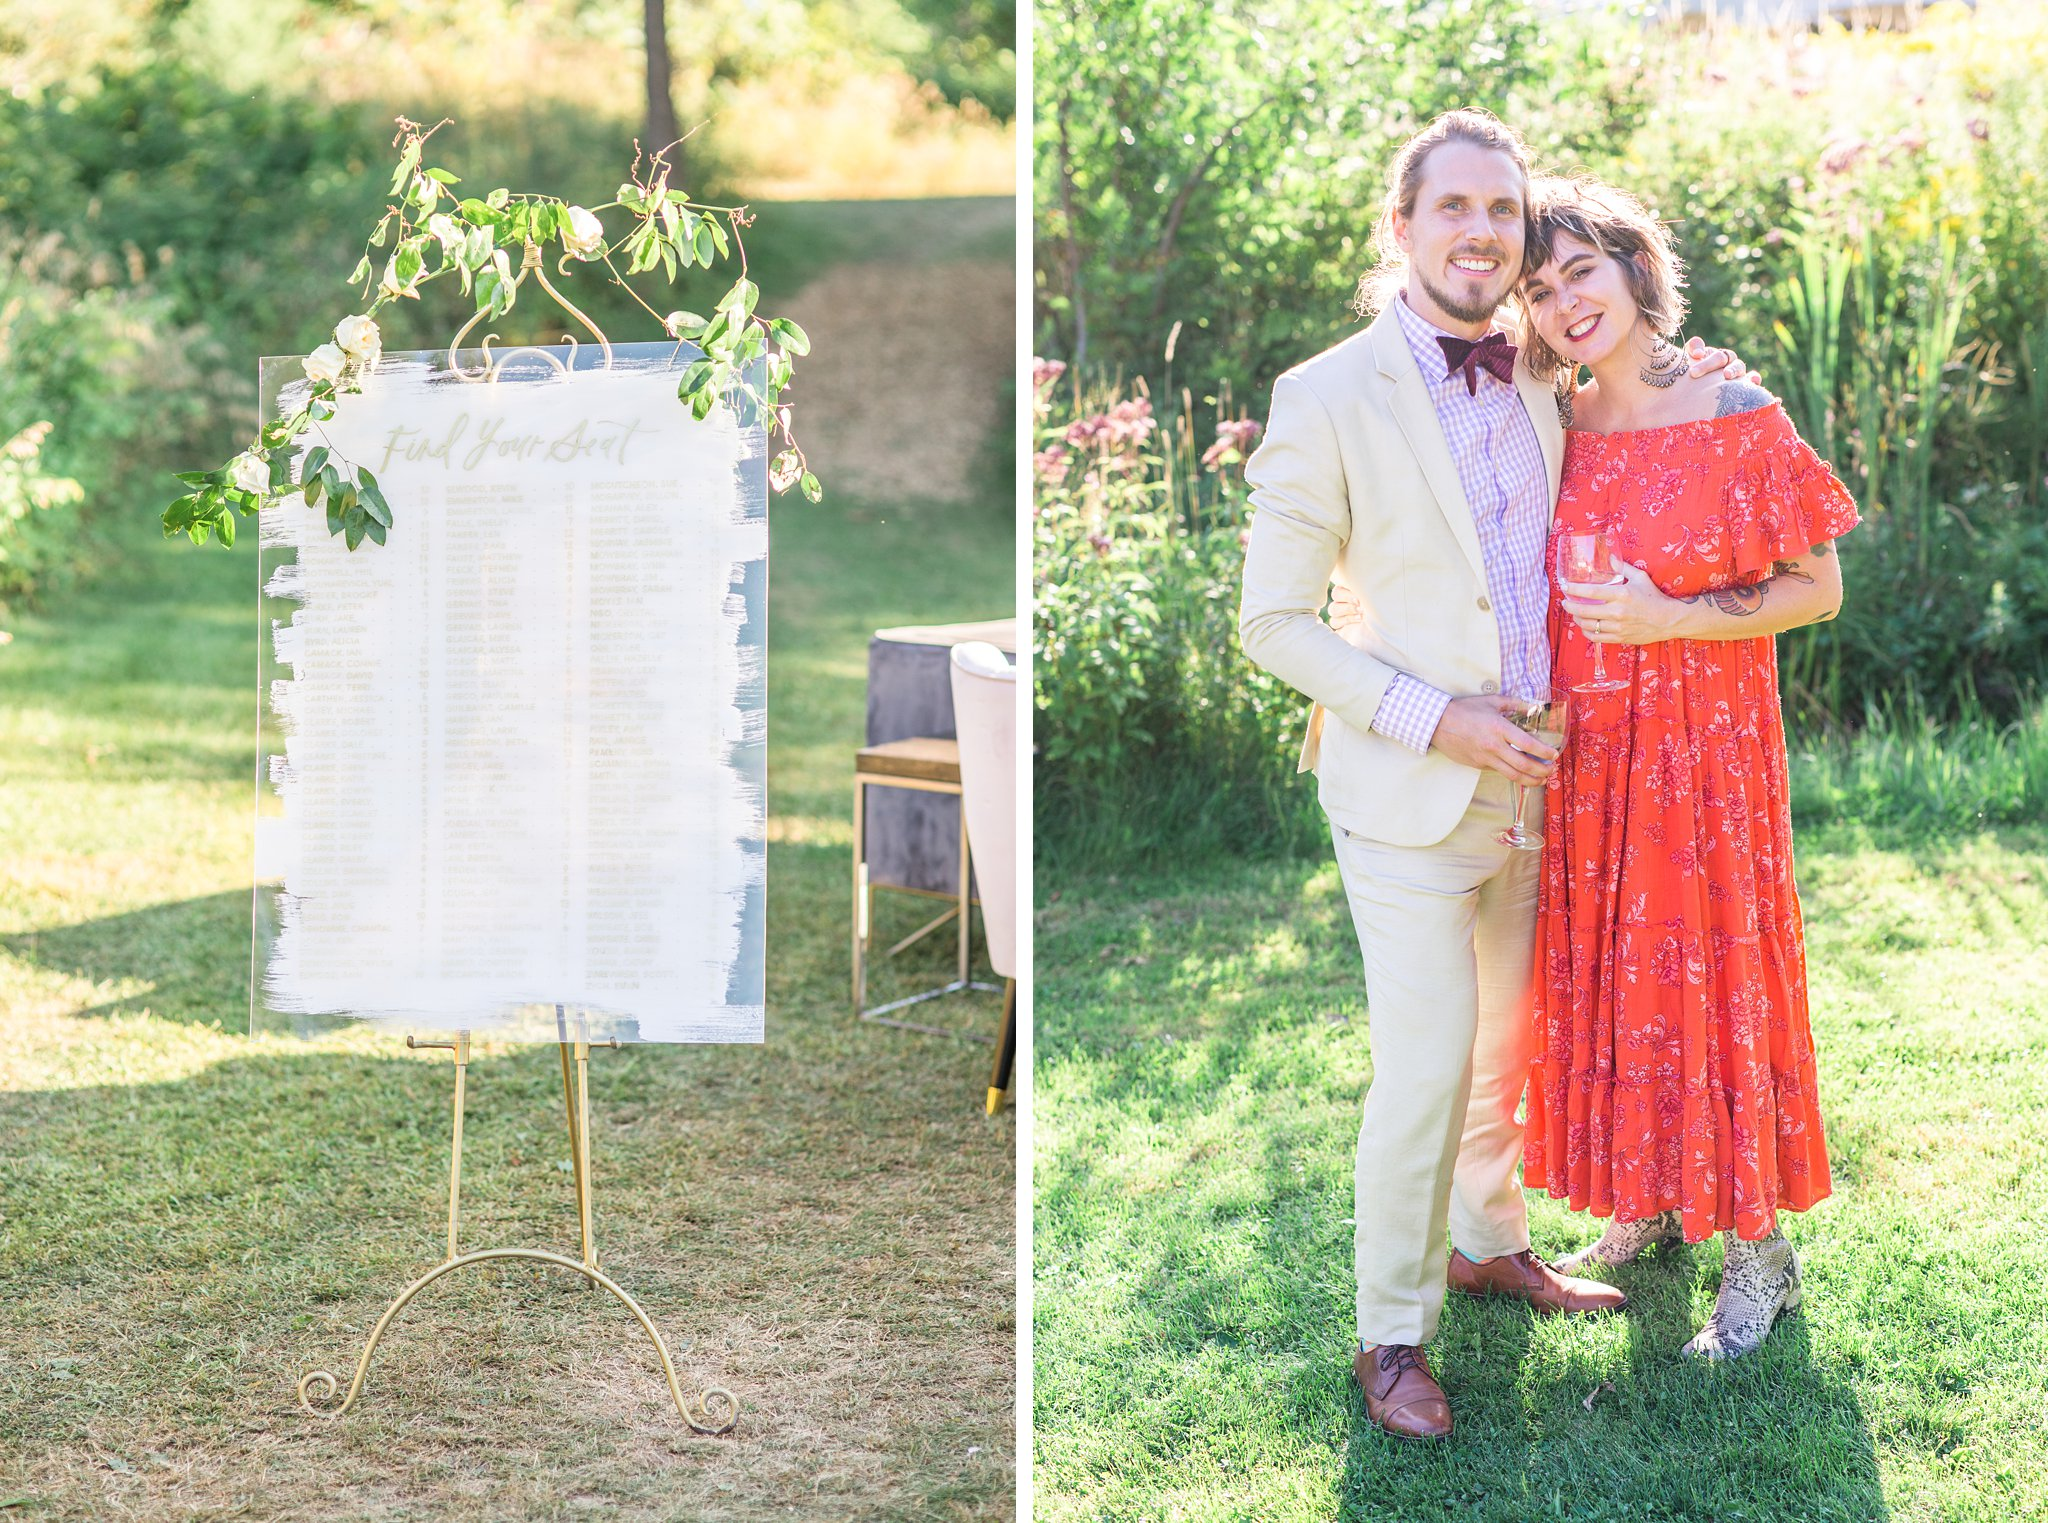 Seating chart, Calligraphy, Chalked by Mabz, Private Estate Wedding Photos, Amy Pinder Photography